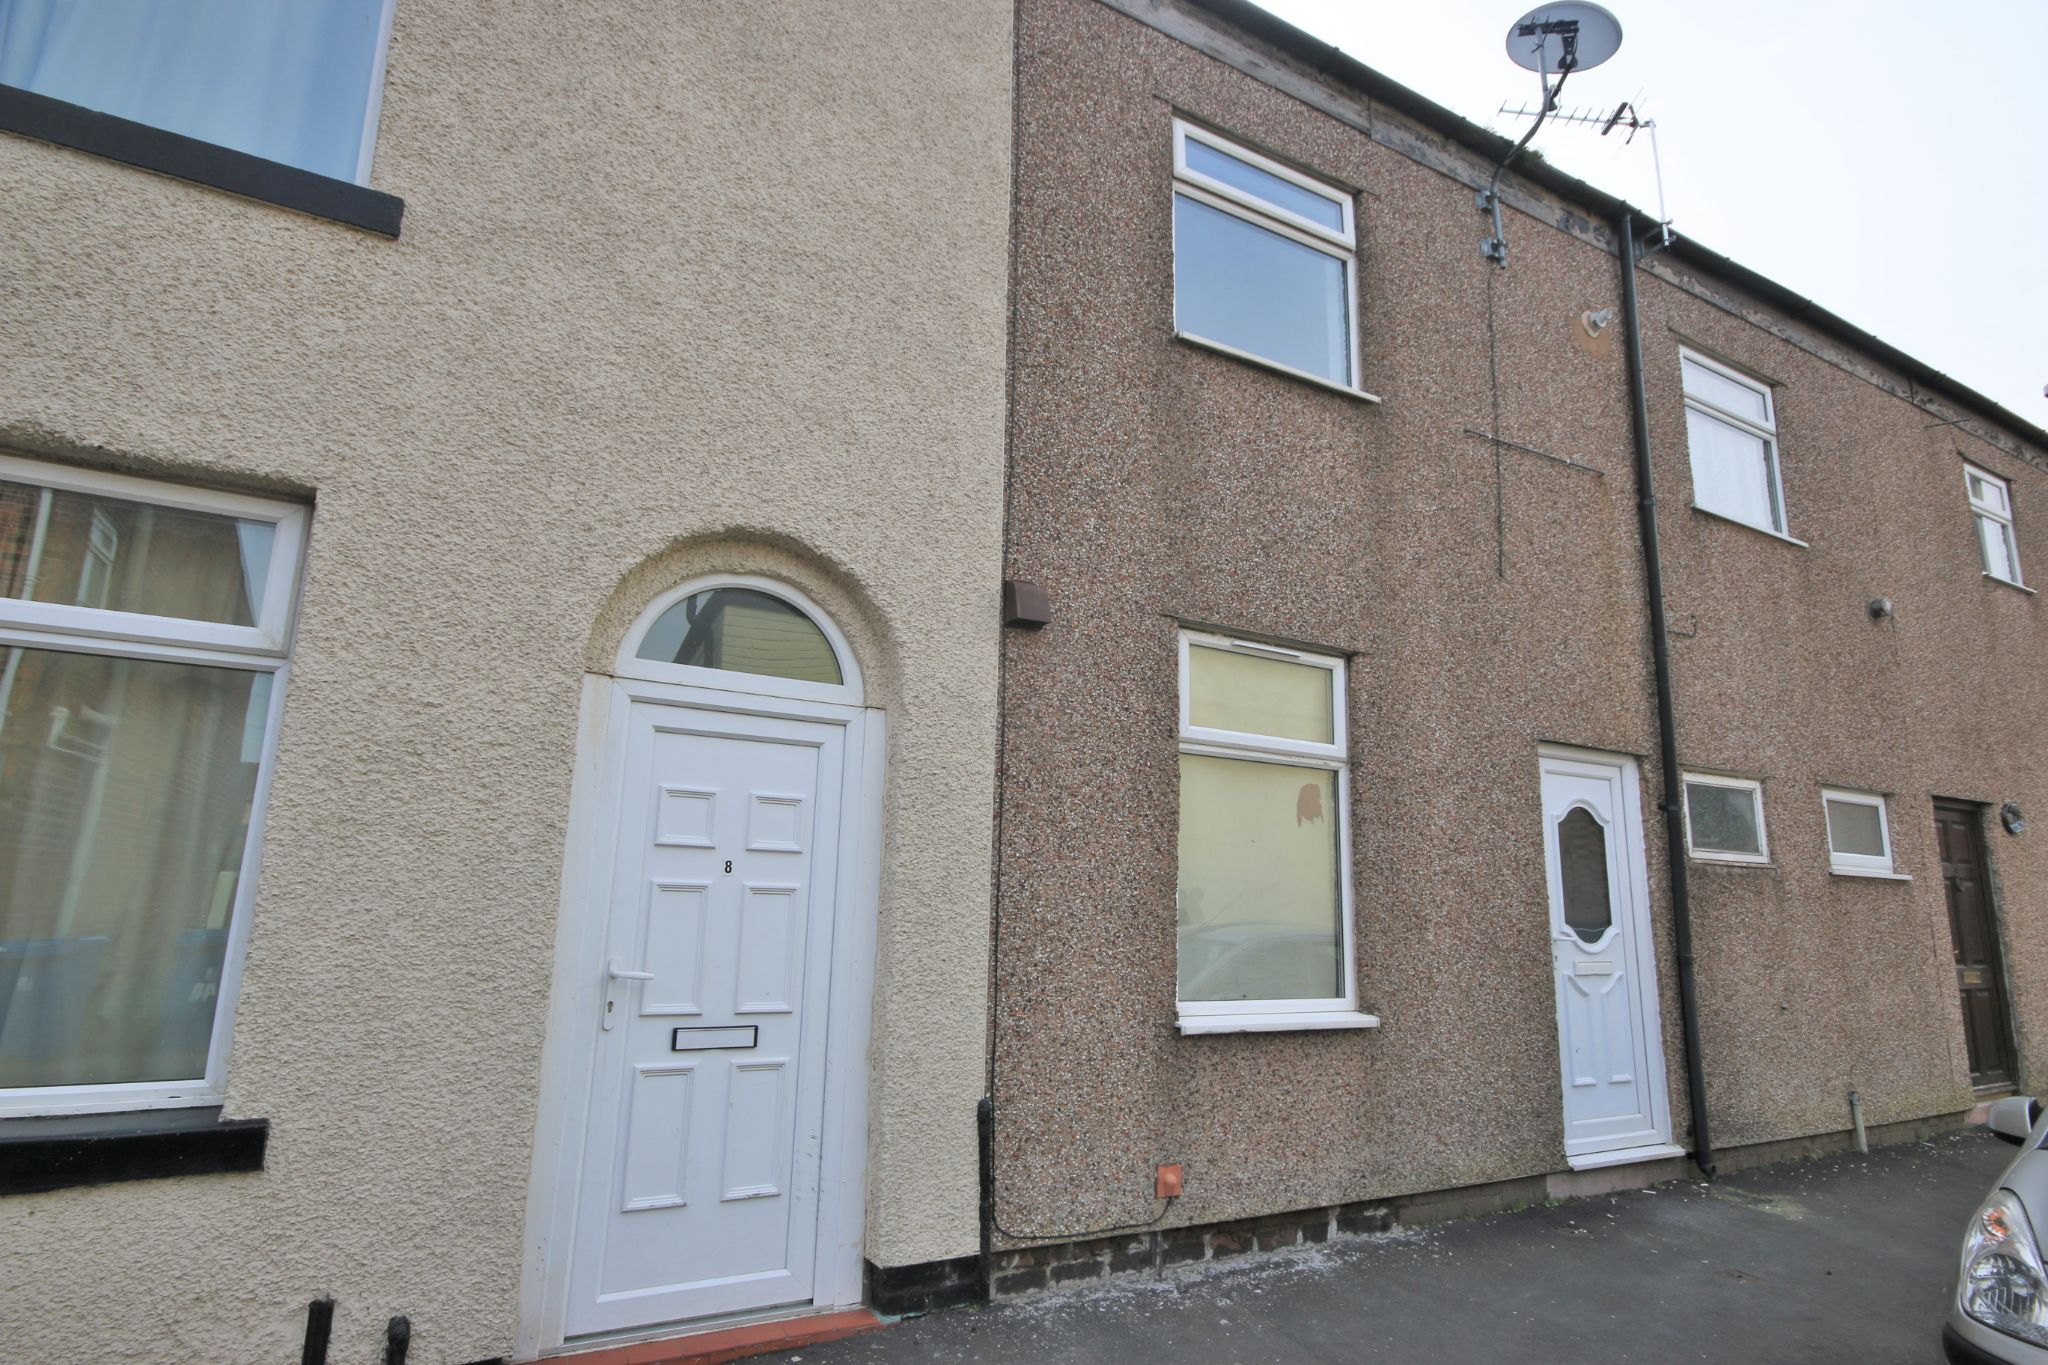 1 Bedroom Mid Terraced House - Photograph 1